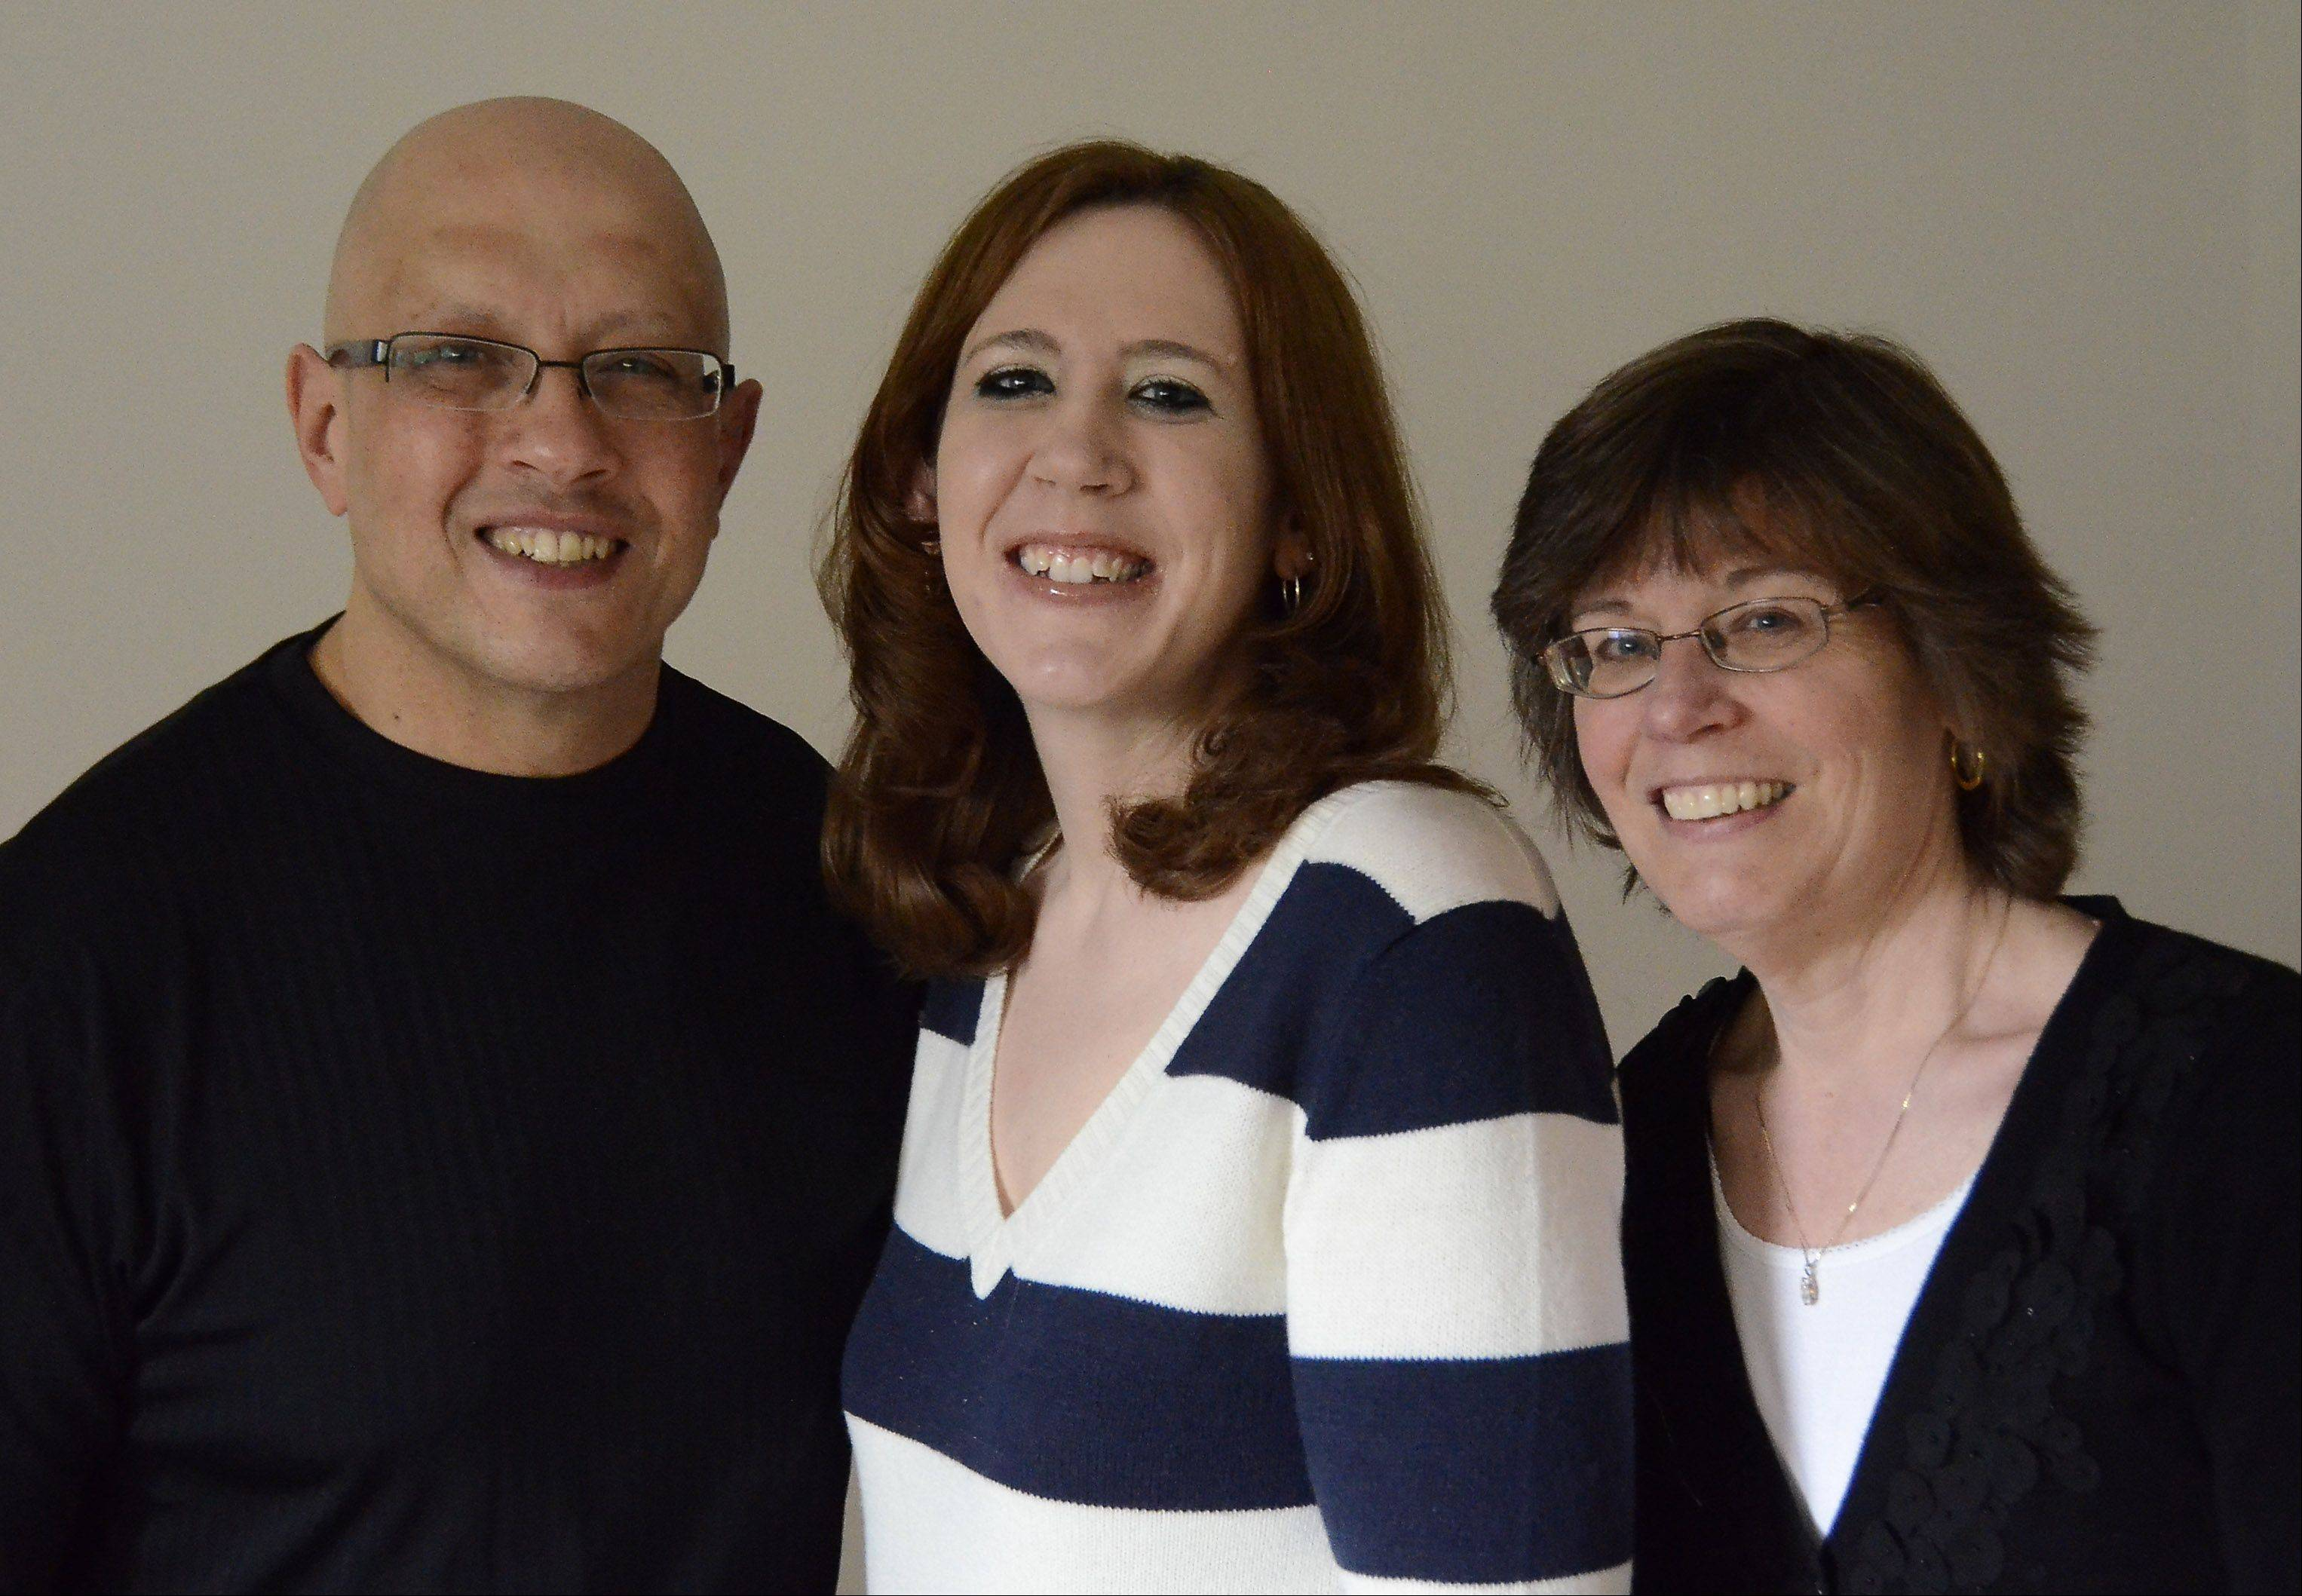 The Guagenti family -- father Lou, daughter Amanda and mom Shirley -- of Arlington Heights are hoping for supportive living housing for people with mental illness in the suburbs. Amanda is battling mental illness.